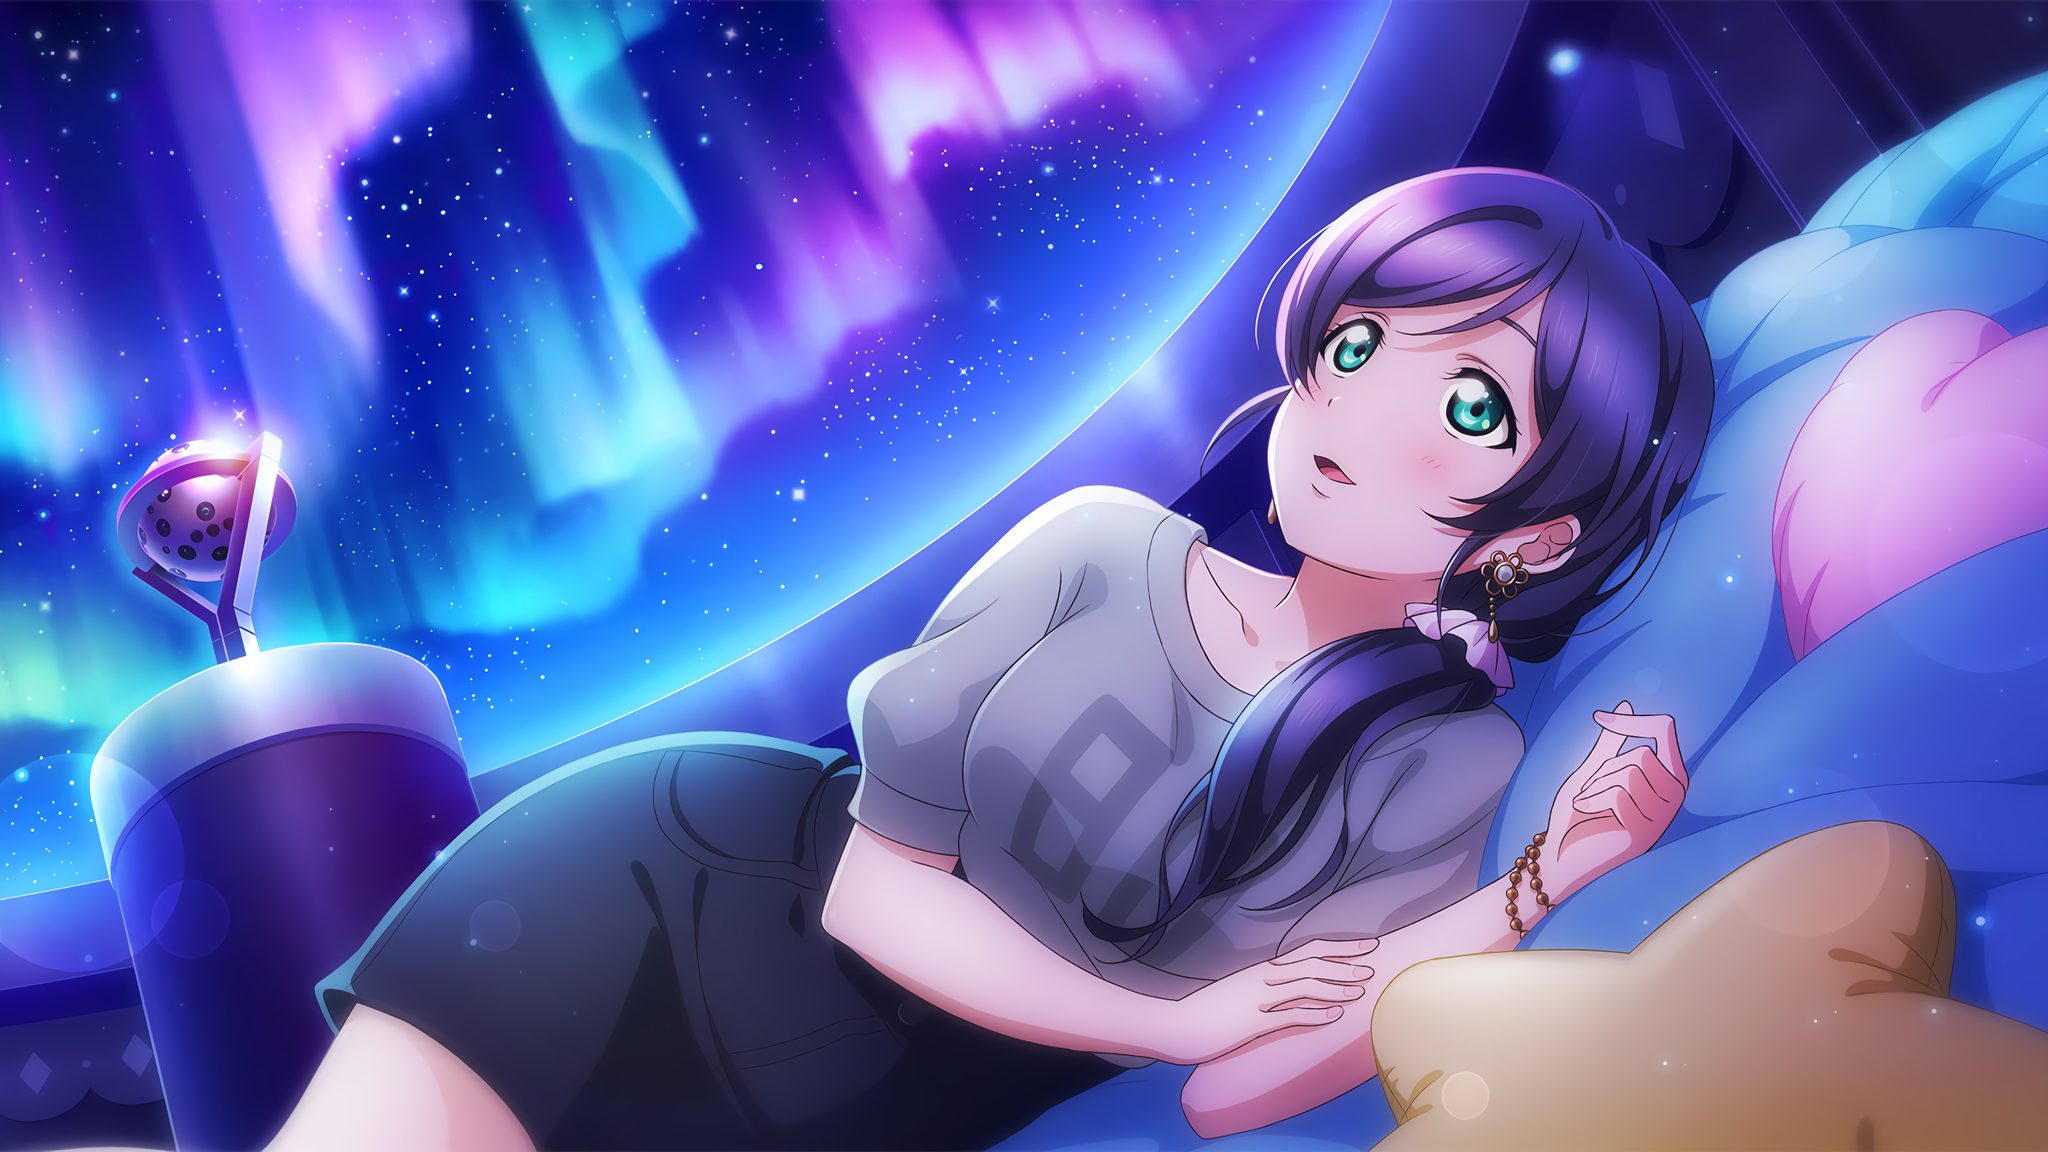 2048x1152 Love Live Series Anime Girl 4k 2048x1152 Resolution Hd 4k Wallpapers Images Backgrounds Photos And Pictures